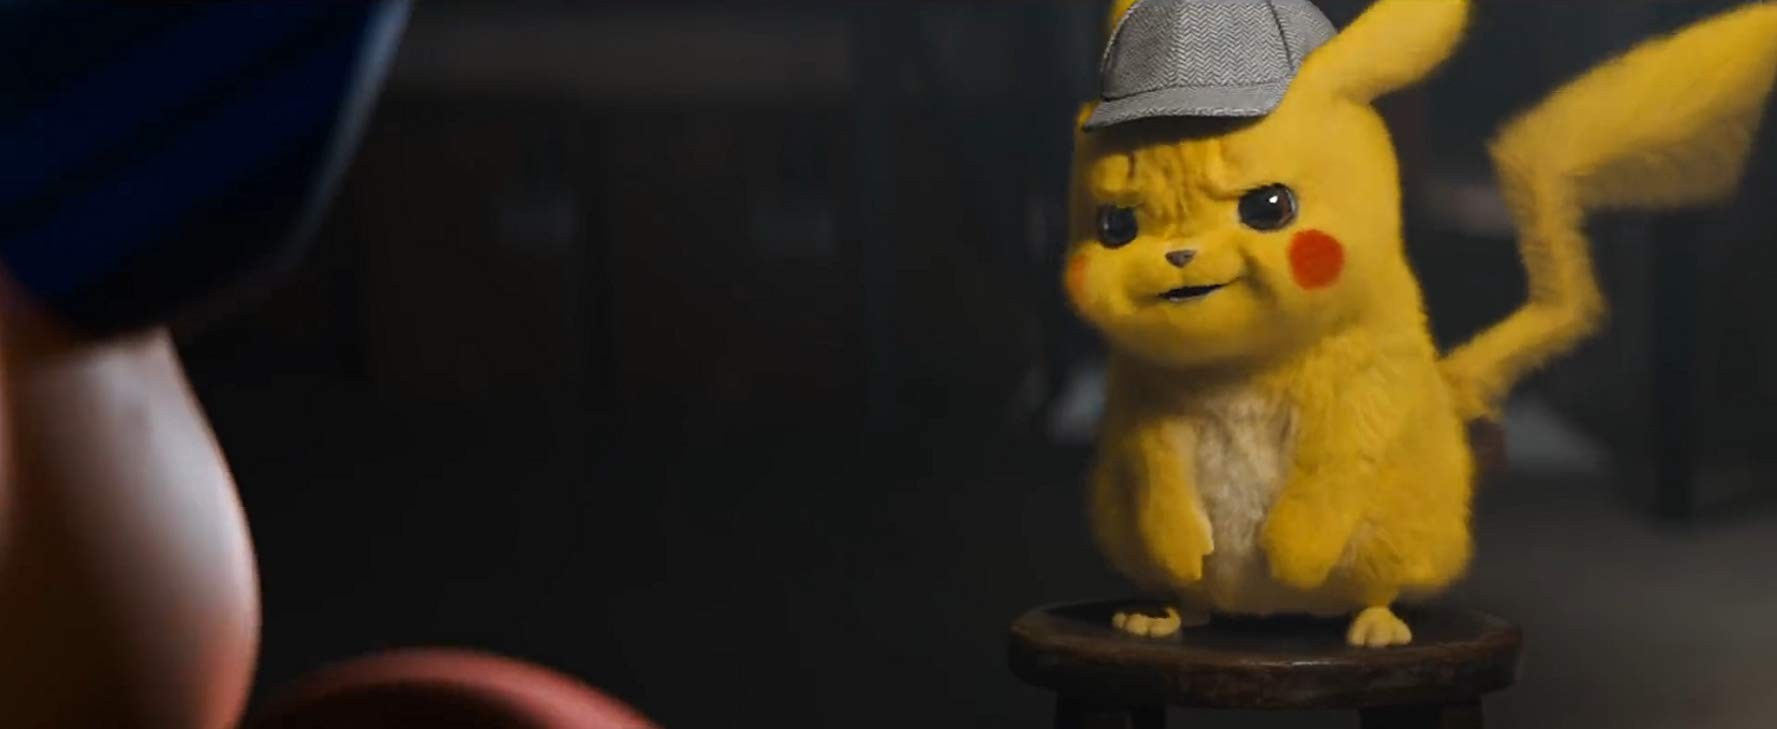 Pokémon Detective Pikachu Opening At Wide Release In On Fri May